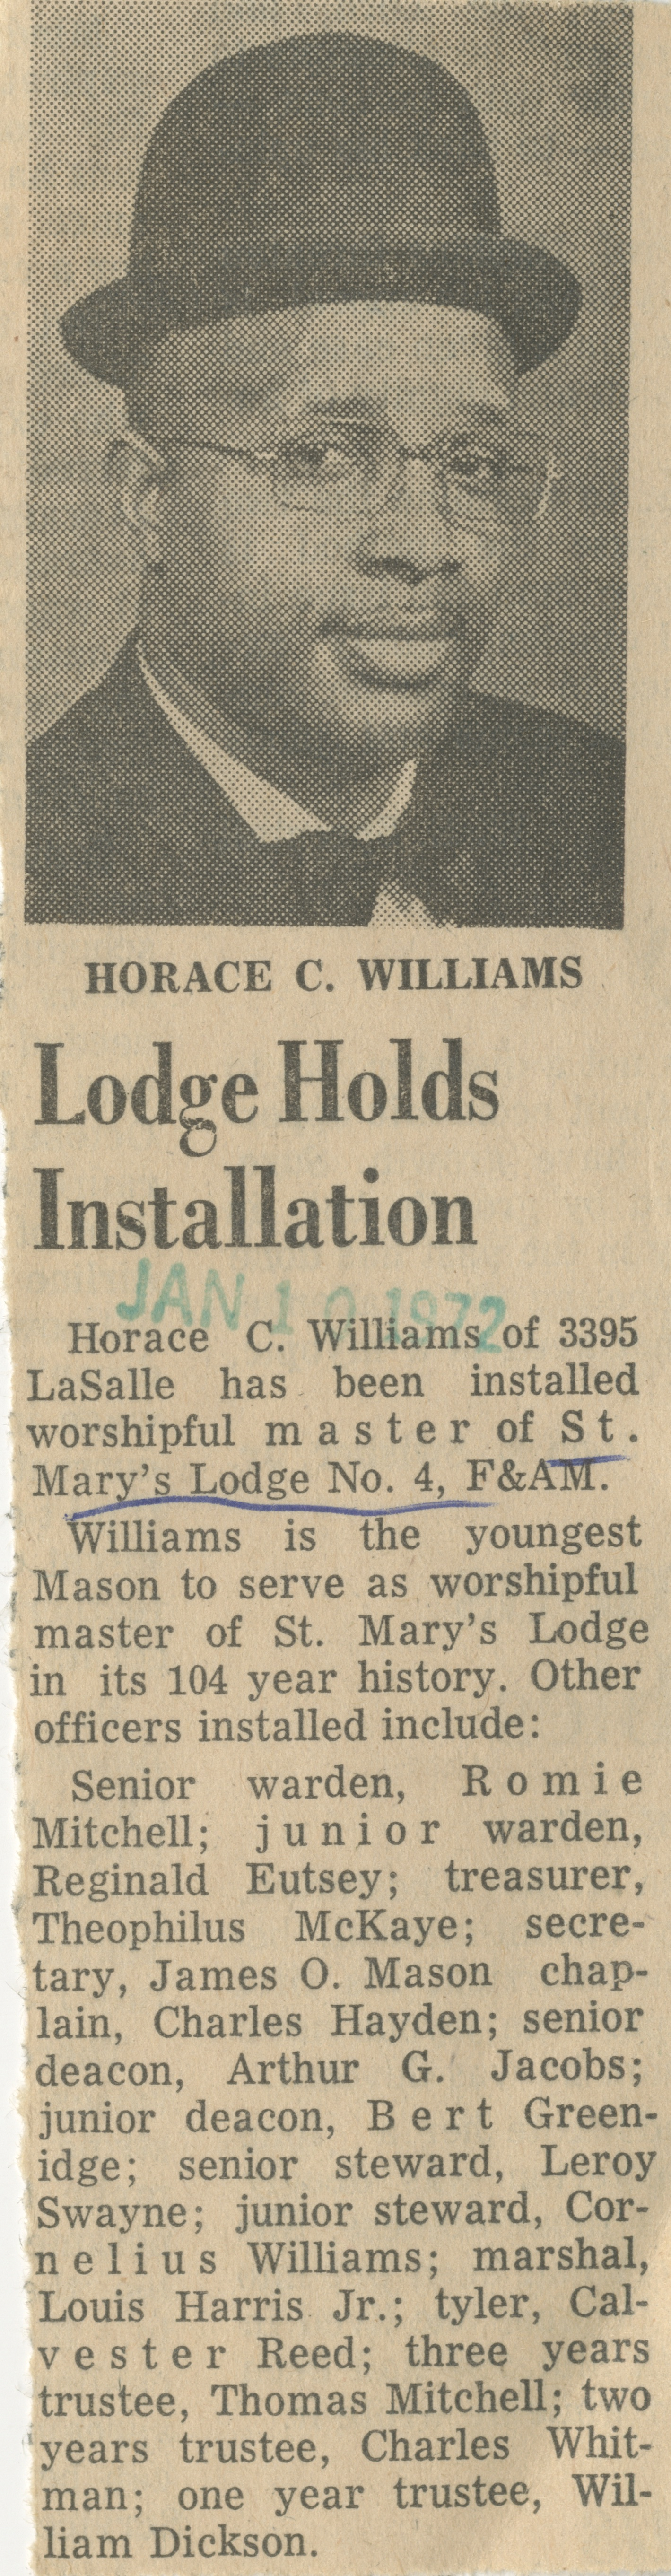 Lodge Holds Installation image